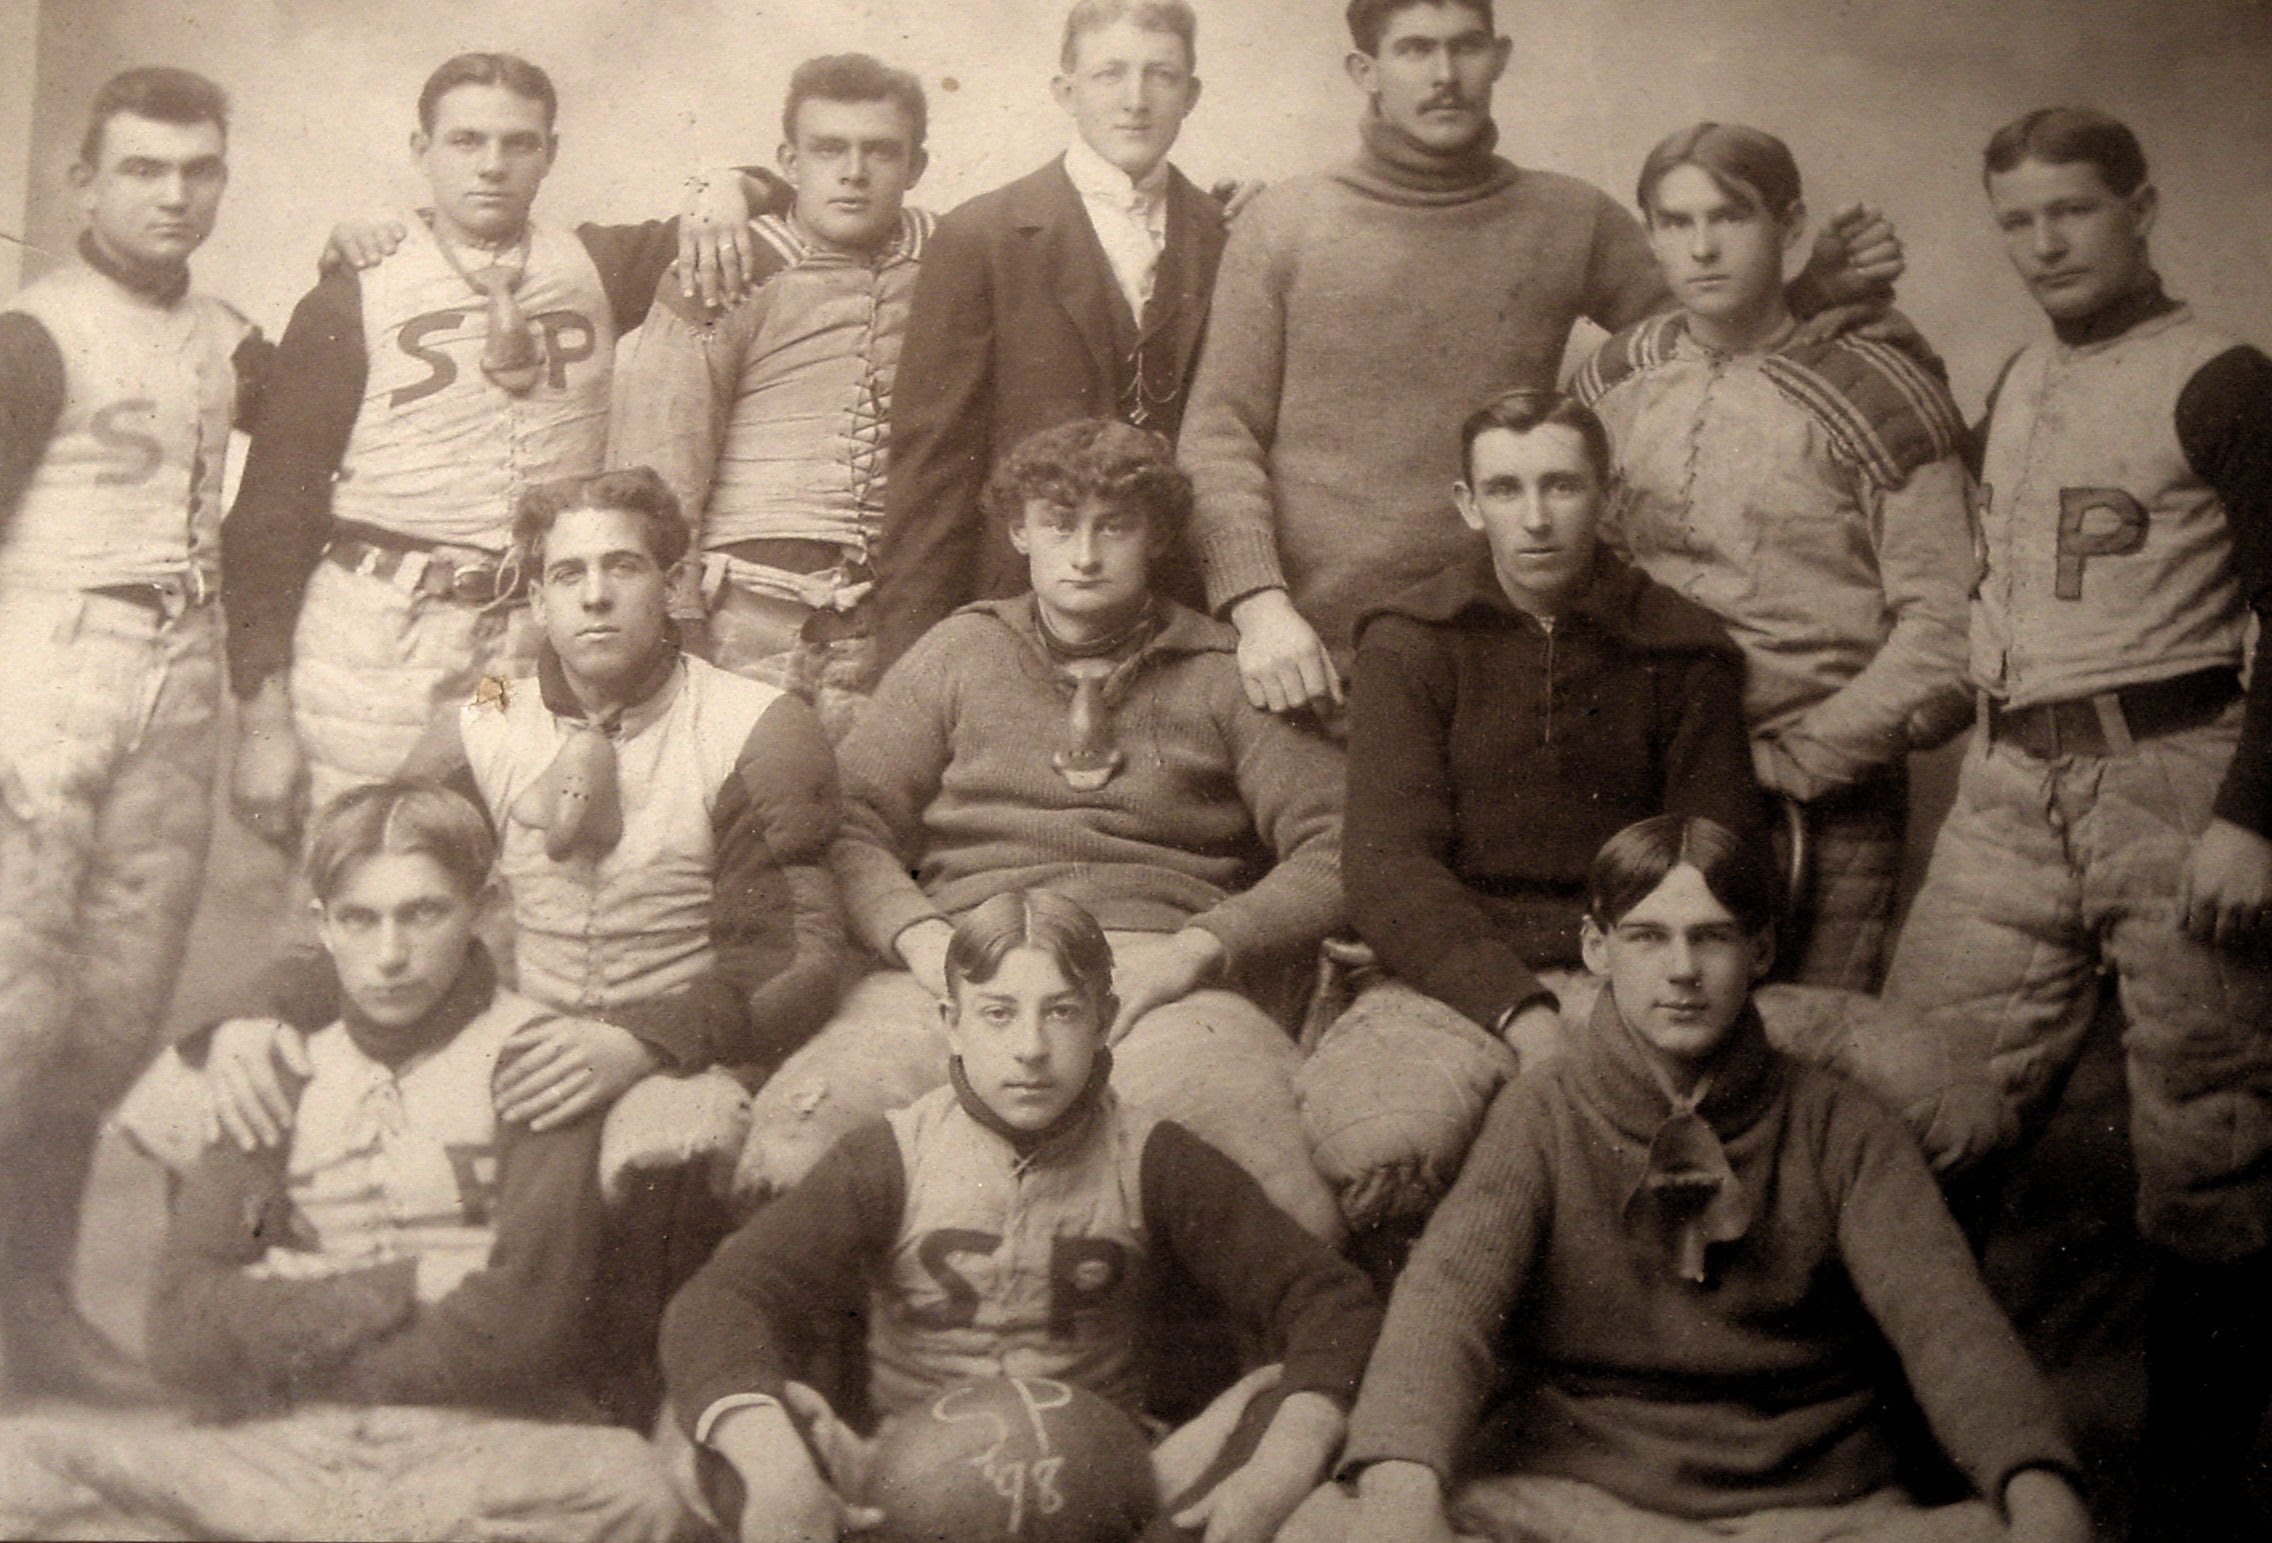 Old SP football photo